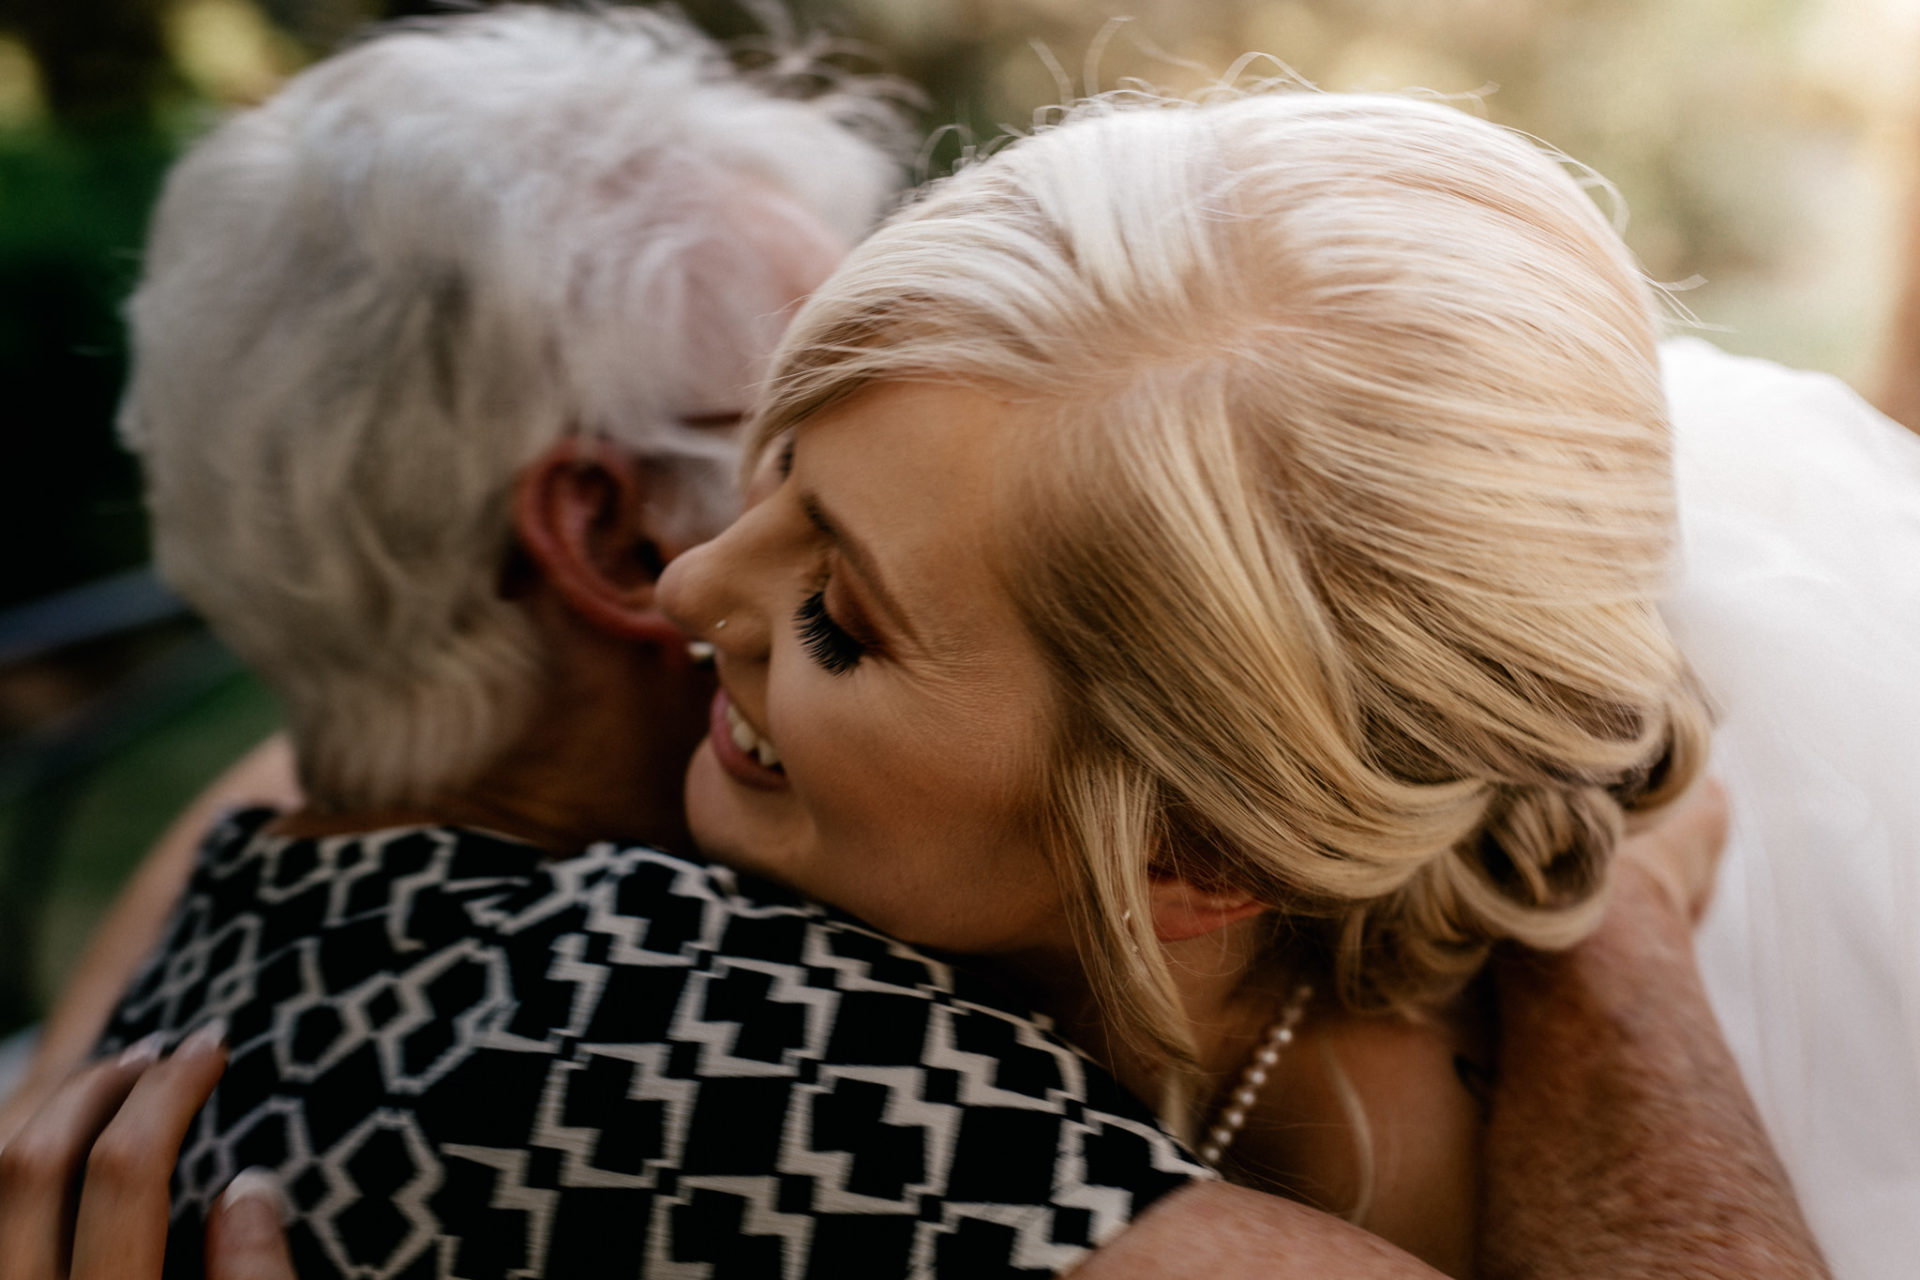 backyard-wedding-australia-melbourne-reception-hugs-grandma-congratulations-bride